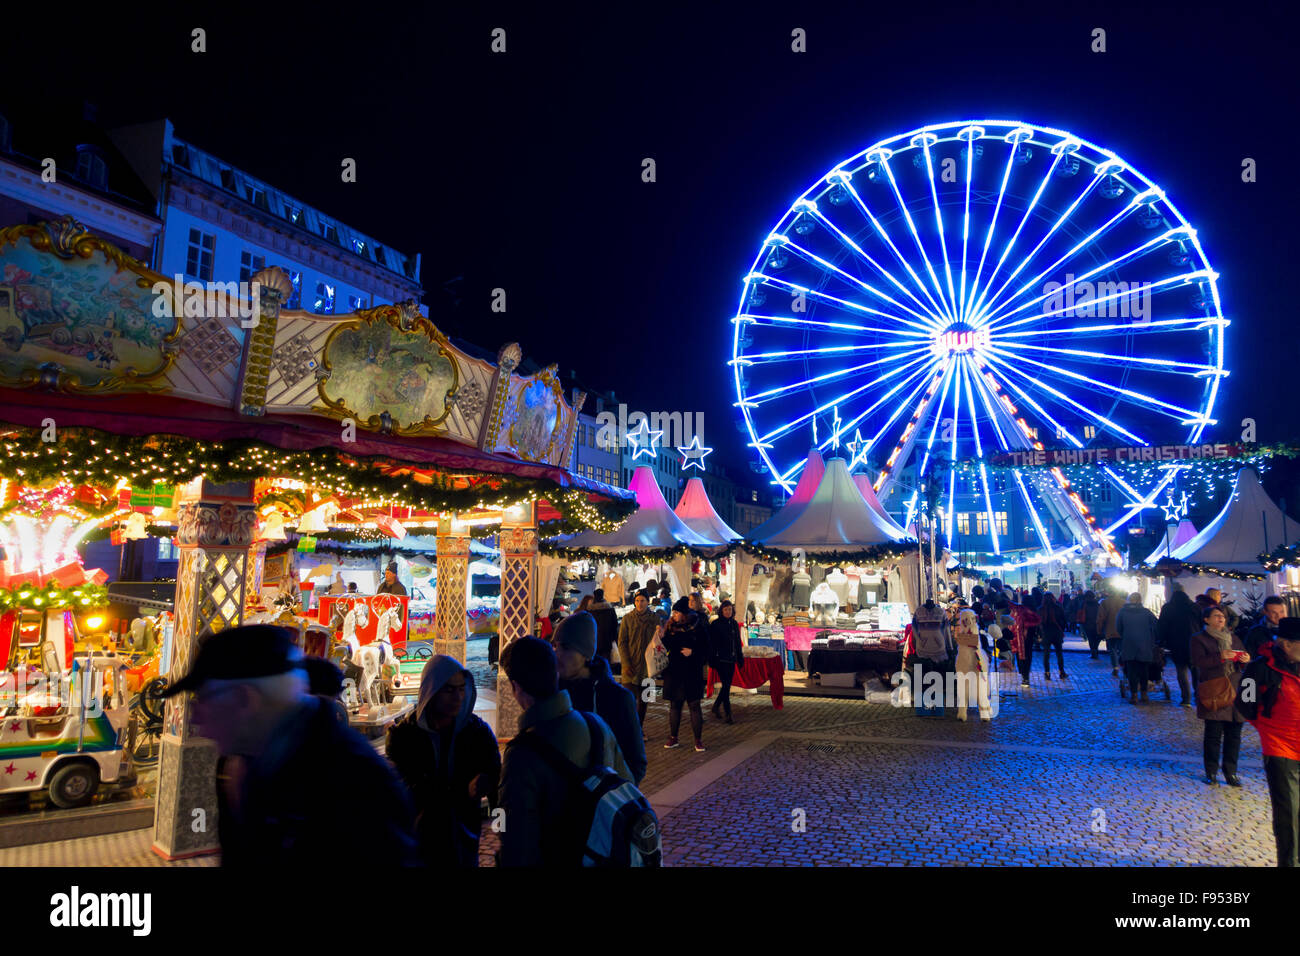 Ferris wheel, fun fair and gift and stalls at the new Christmas market in Nytorv Square at Strøget in Copenhagen, - Stock Image